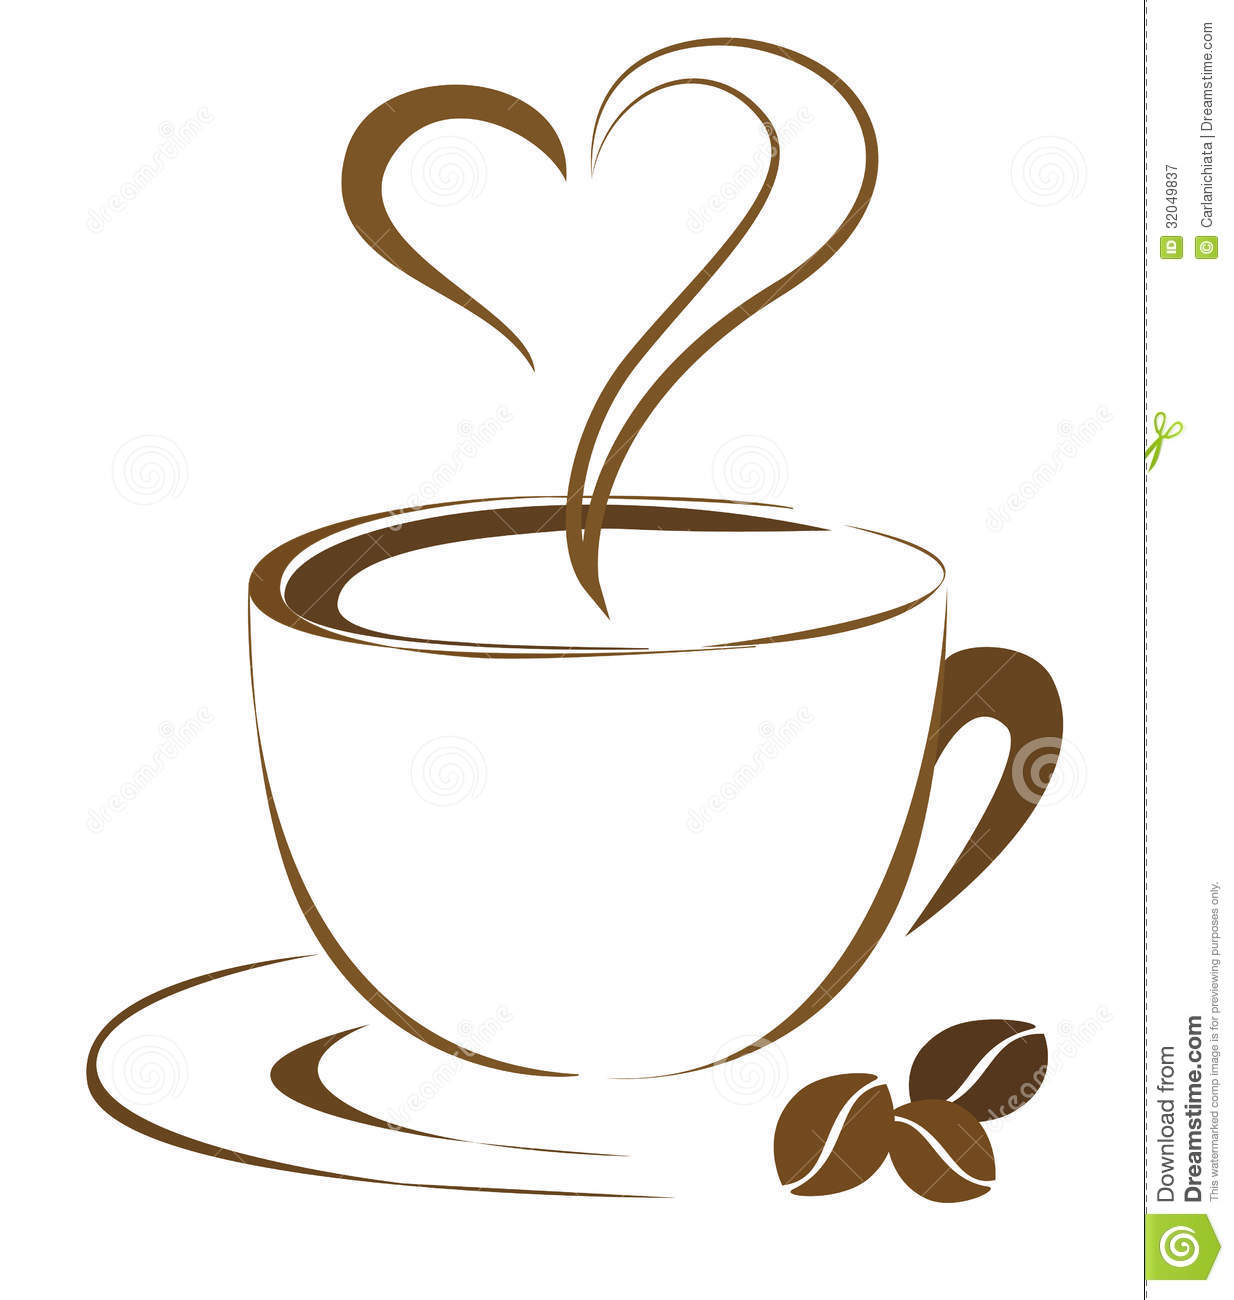 Coffee Heart Royalty Free Stock Photogra-Coffee Heart Royalty Free Stock Photography Image 32049837-17